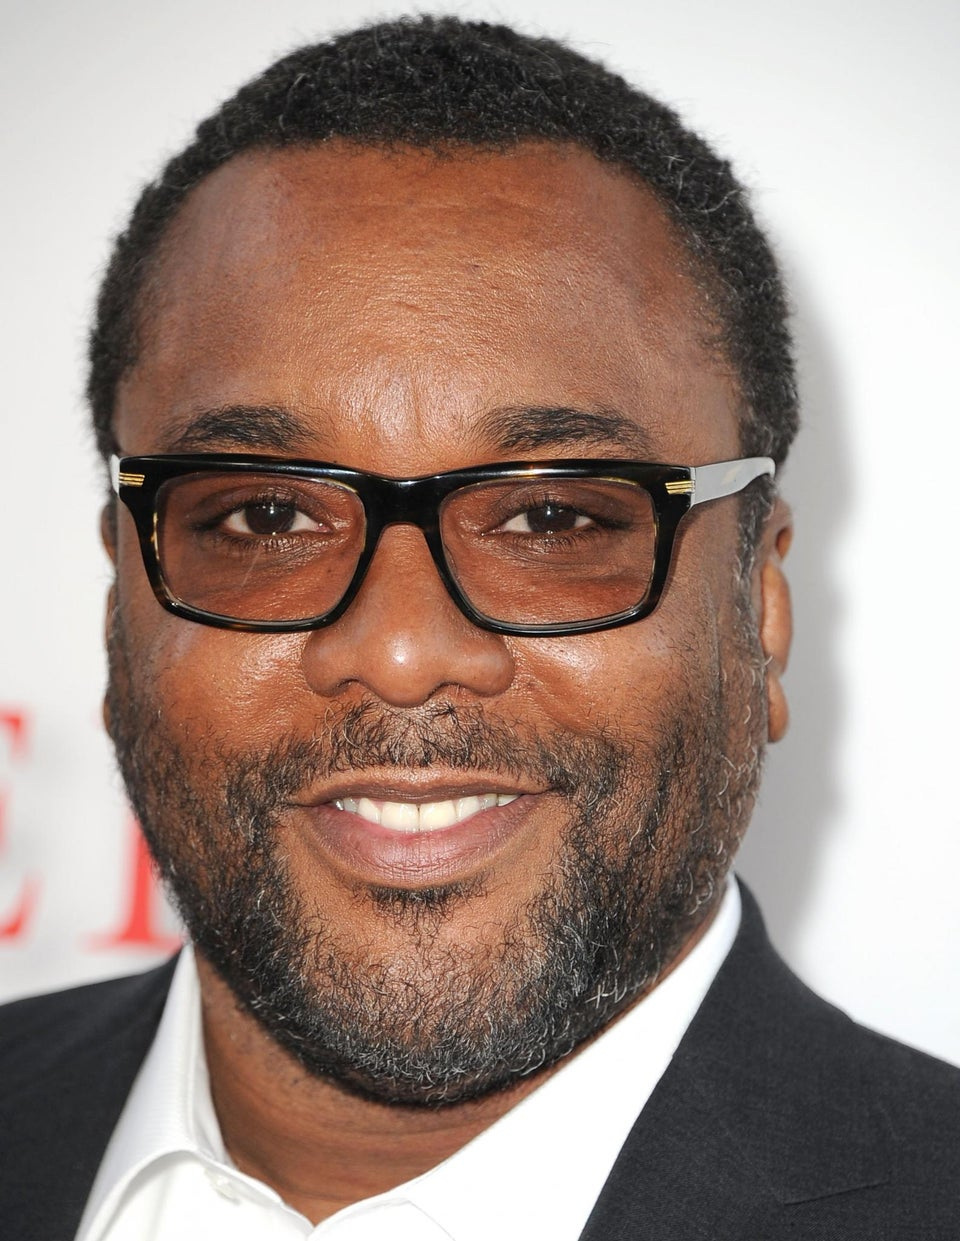 EXCLUSIVE: Lee Daniels on Directing Oprah, and Why Black Women Will Appreciate 'The Butler'